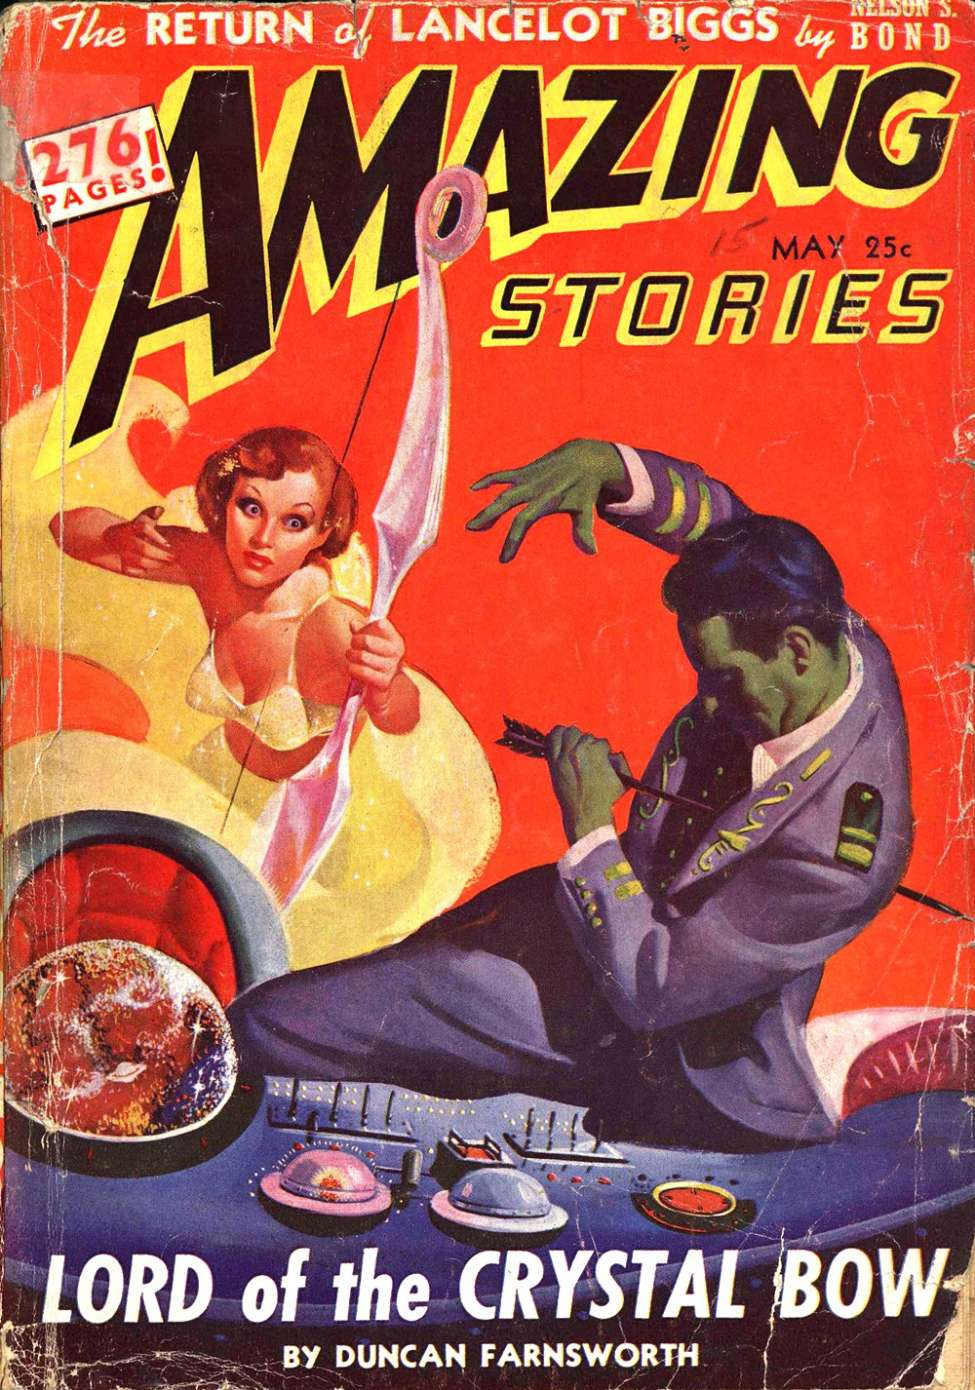 Comic Book Cover For Amazing Stories v16 05 - Lord of the Crystal Bow - Duncan Farnsworth